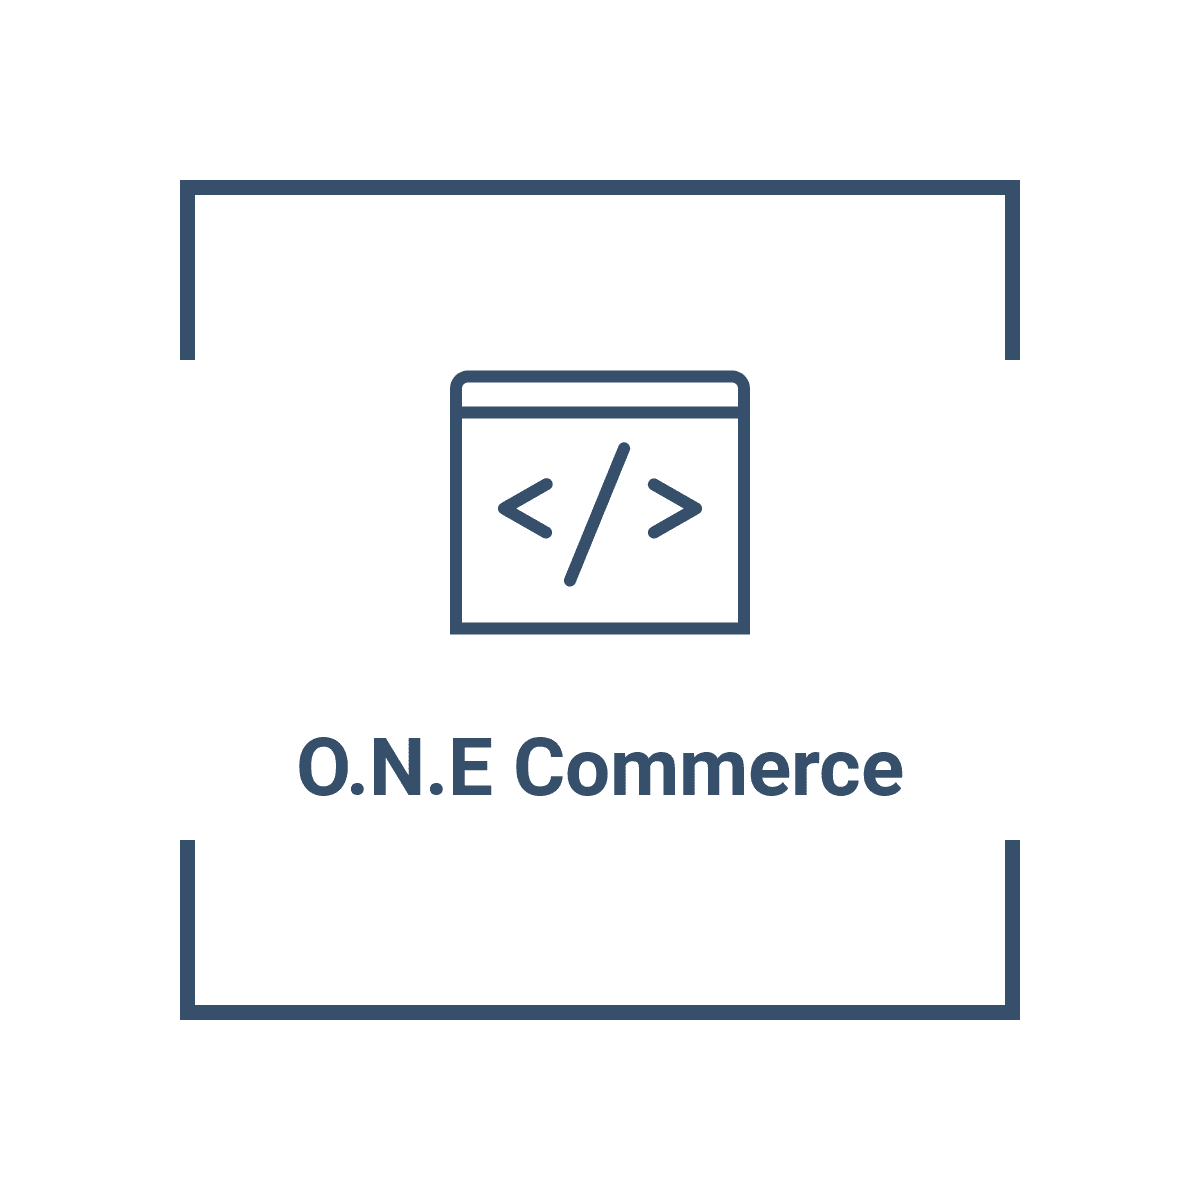 O.N.E Commerce